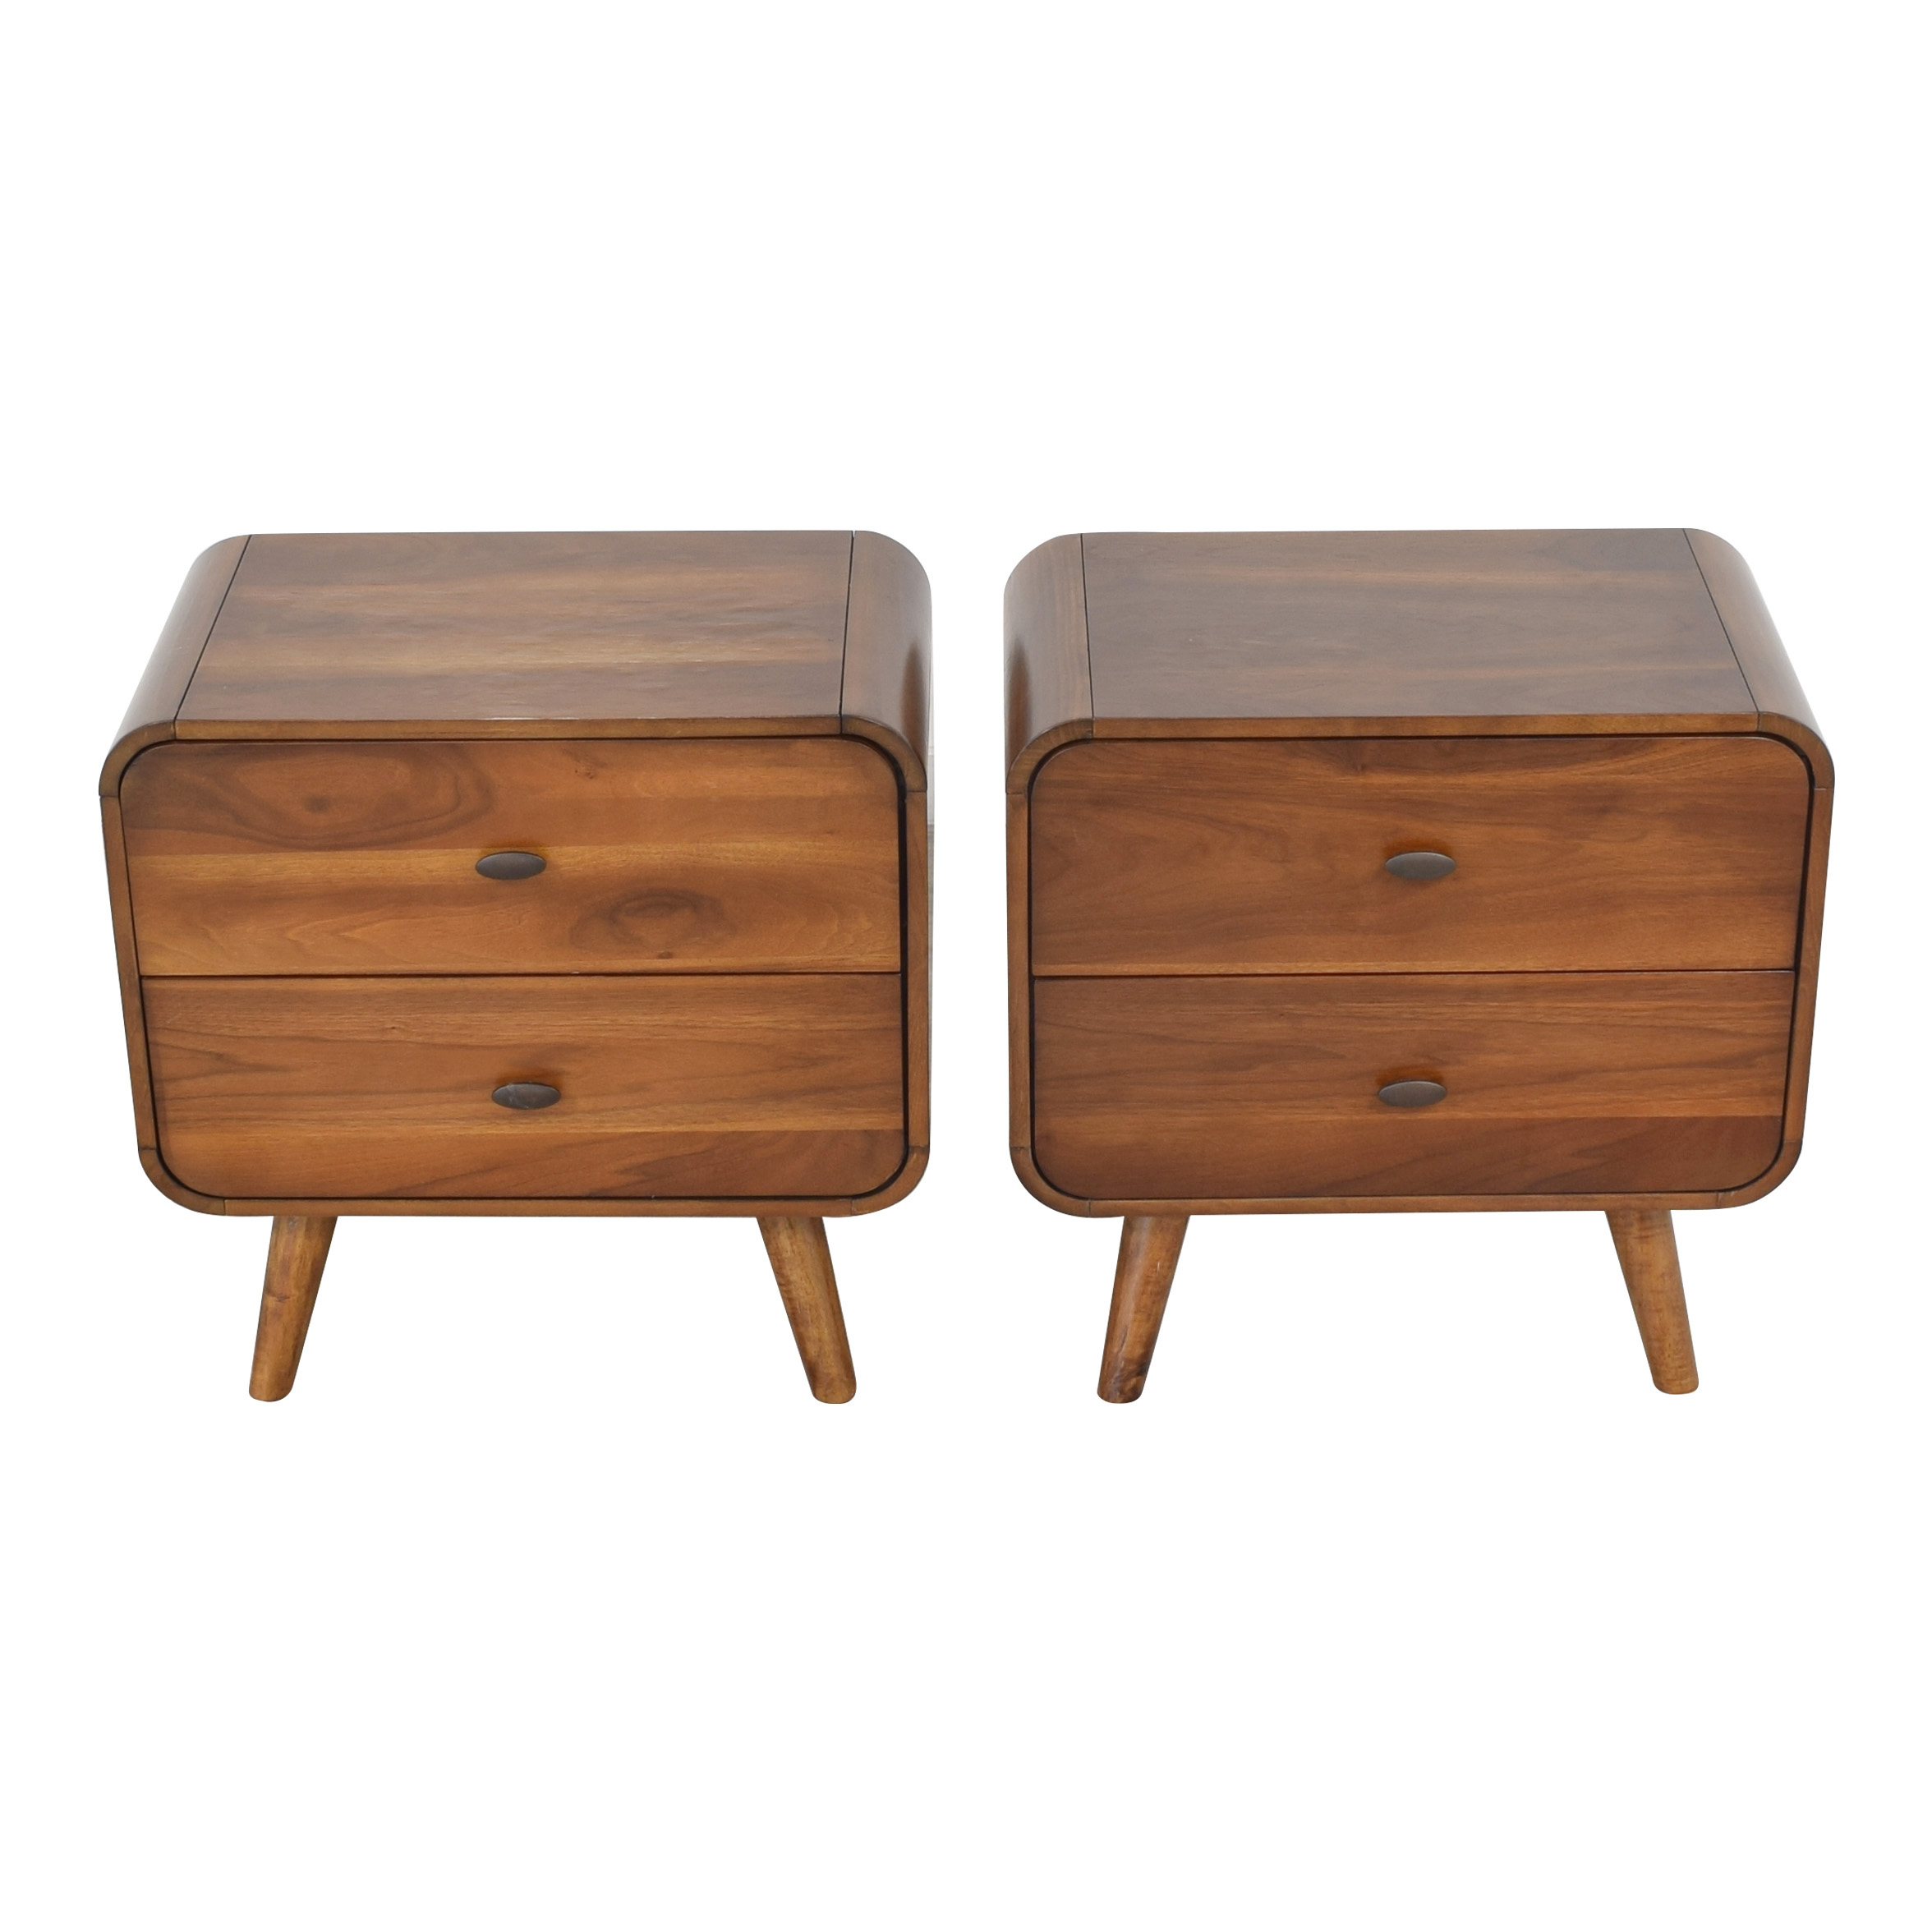 Coaster Fine Furniture Coaster Robyn Nightstands End Tables